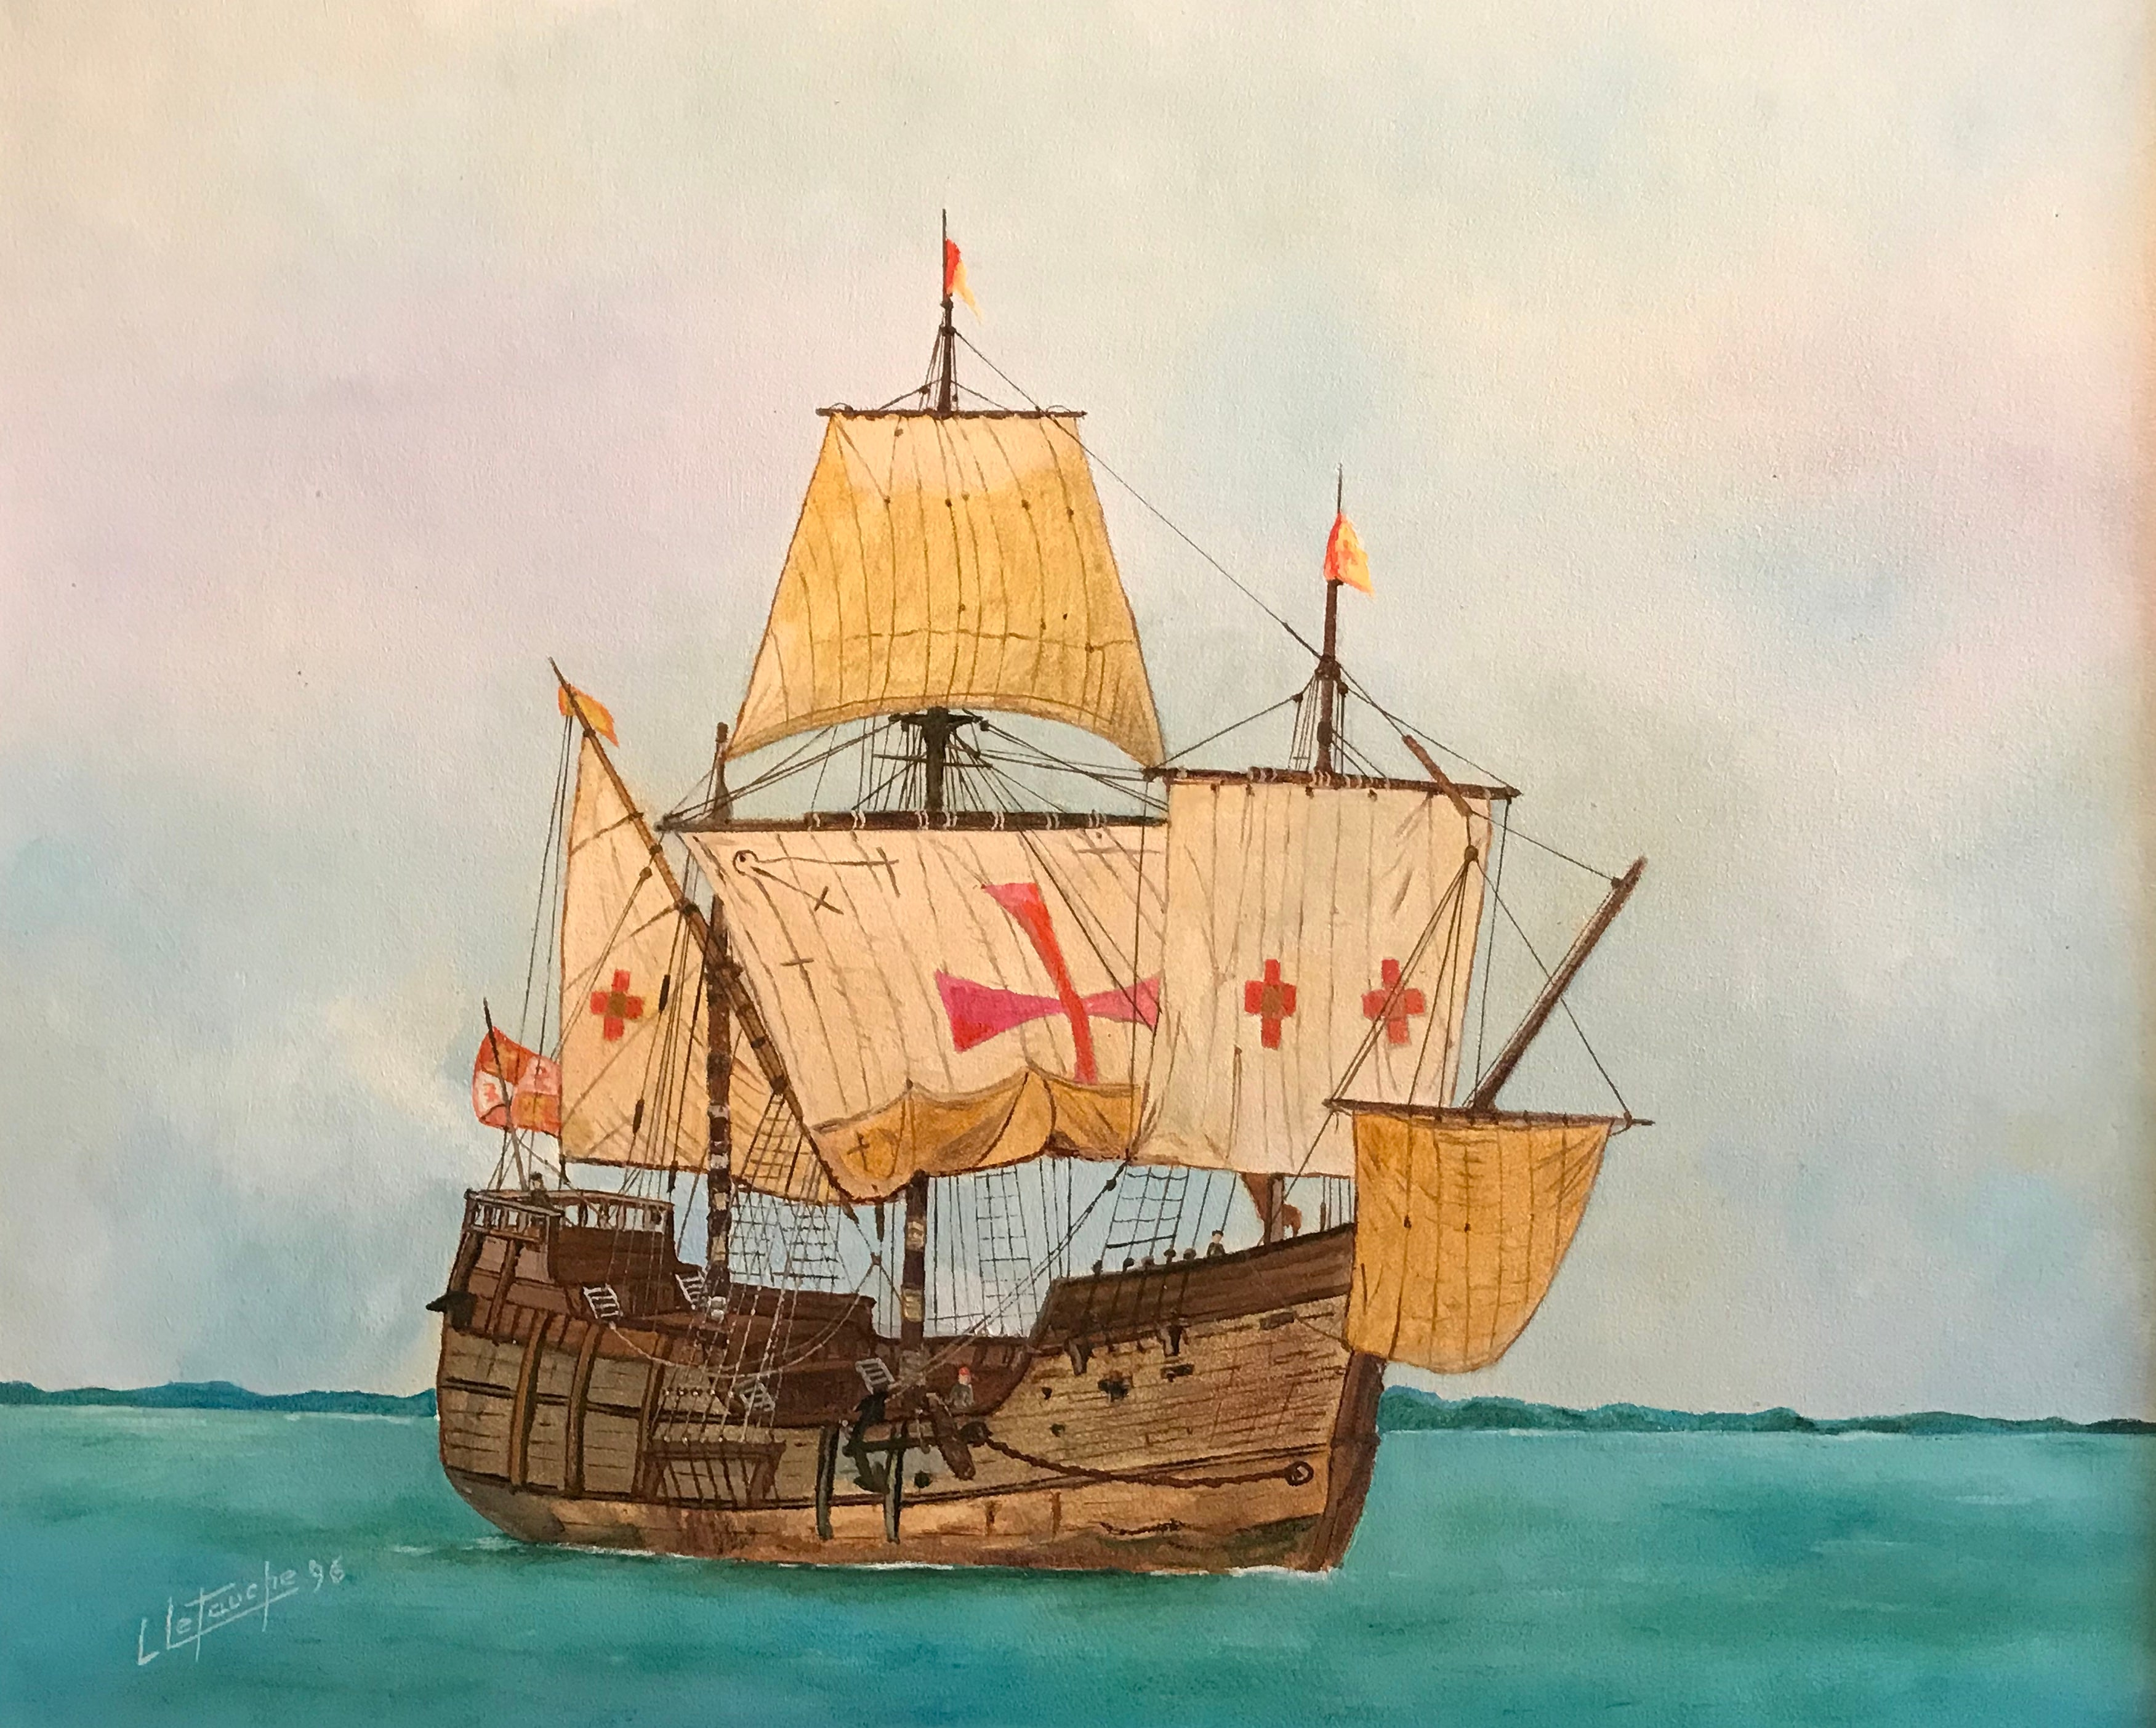 The Santa Maria - Christopher Columbus's ship, signed oil painting